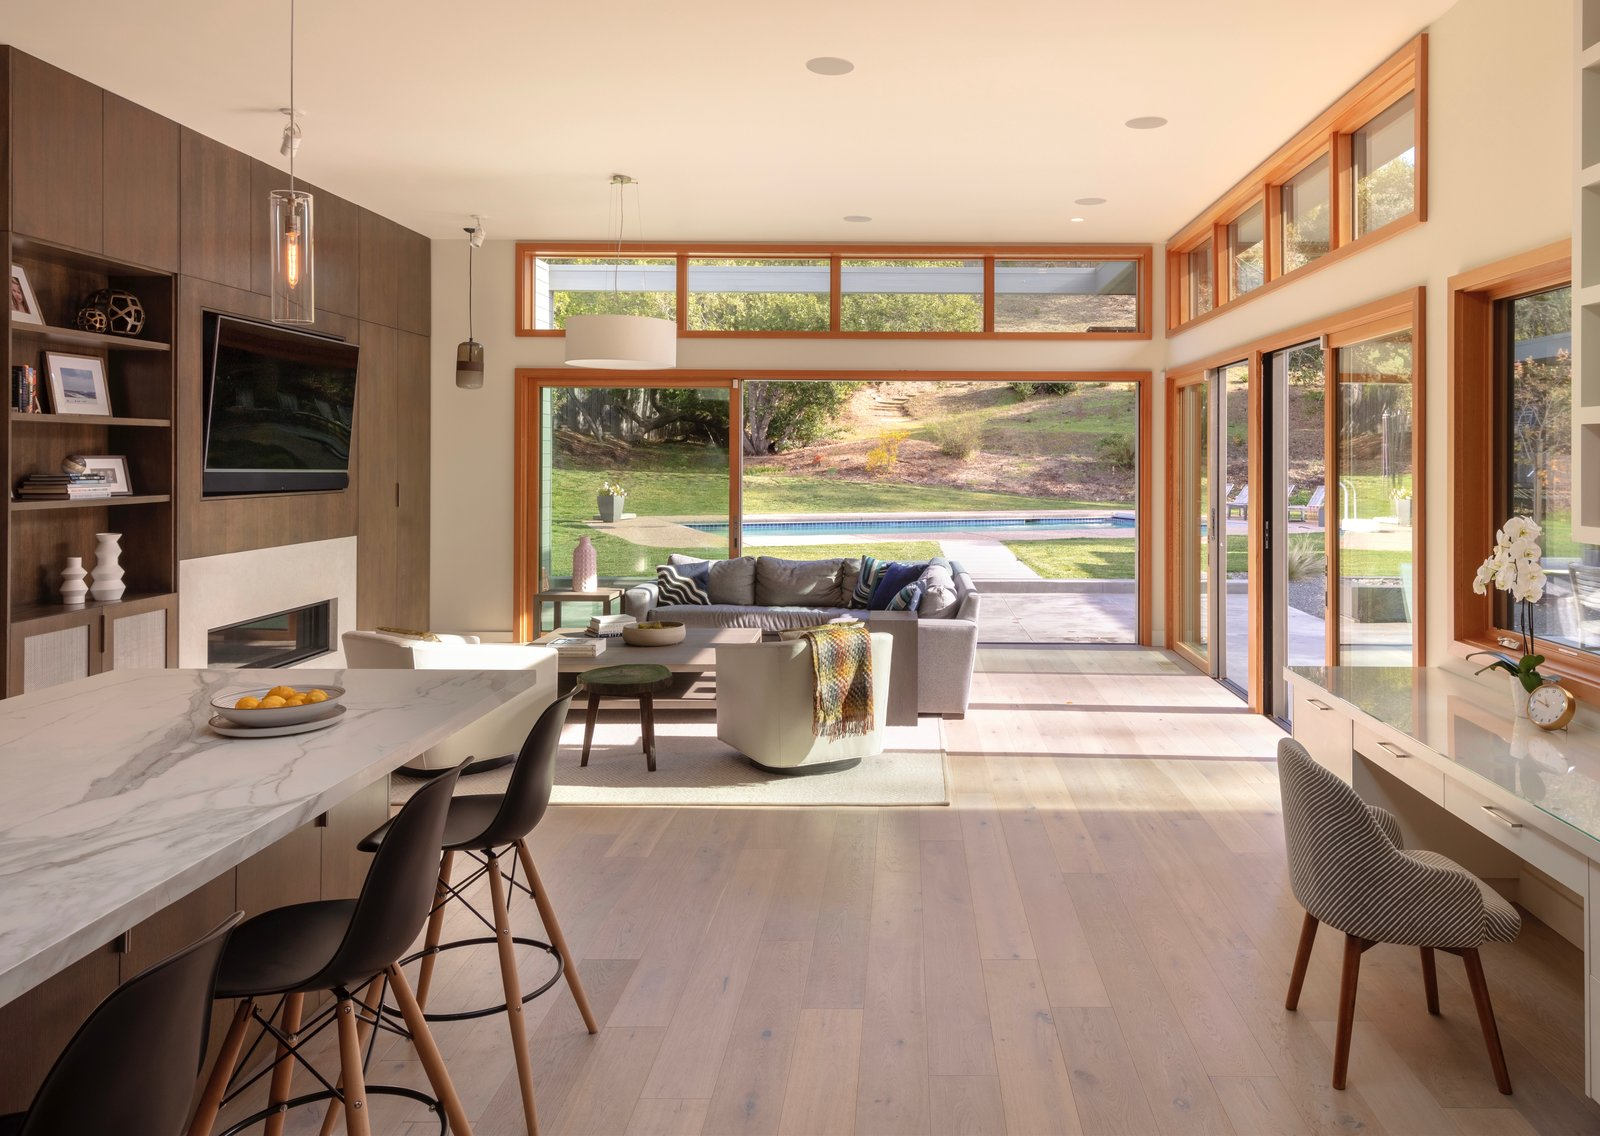 Photo 5 of 9 in 3 Dynamic Solutions For Championing ... on Seamless Indoor Outdoor Living id=20216